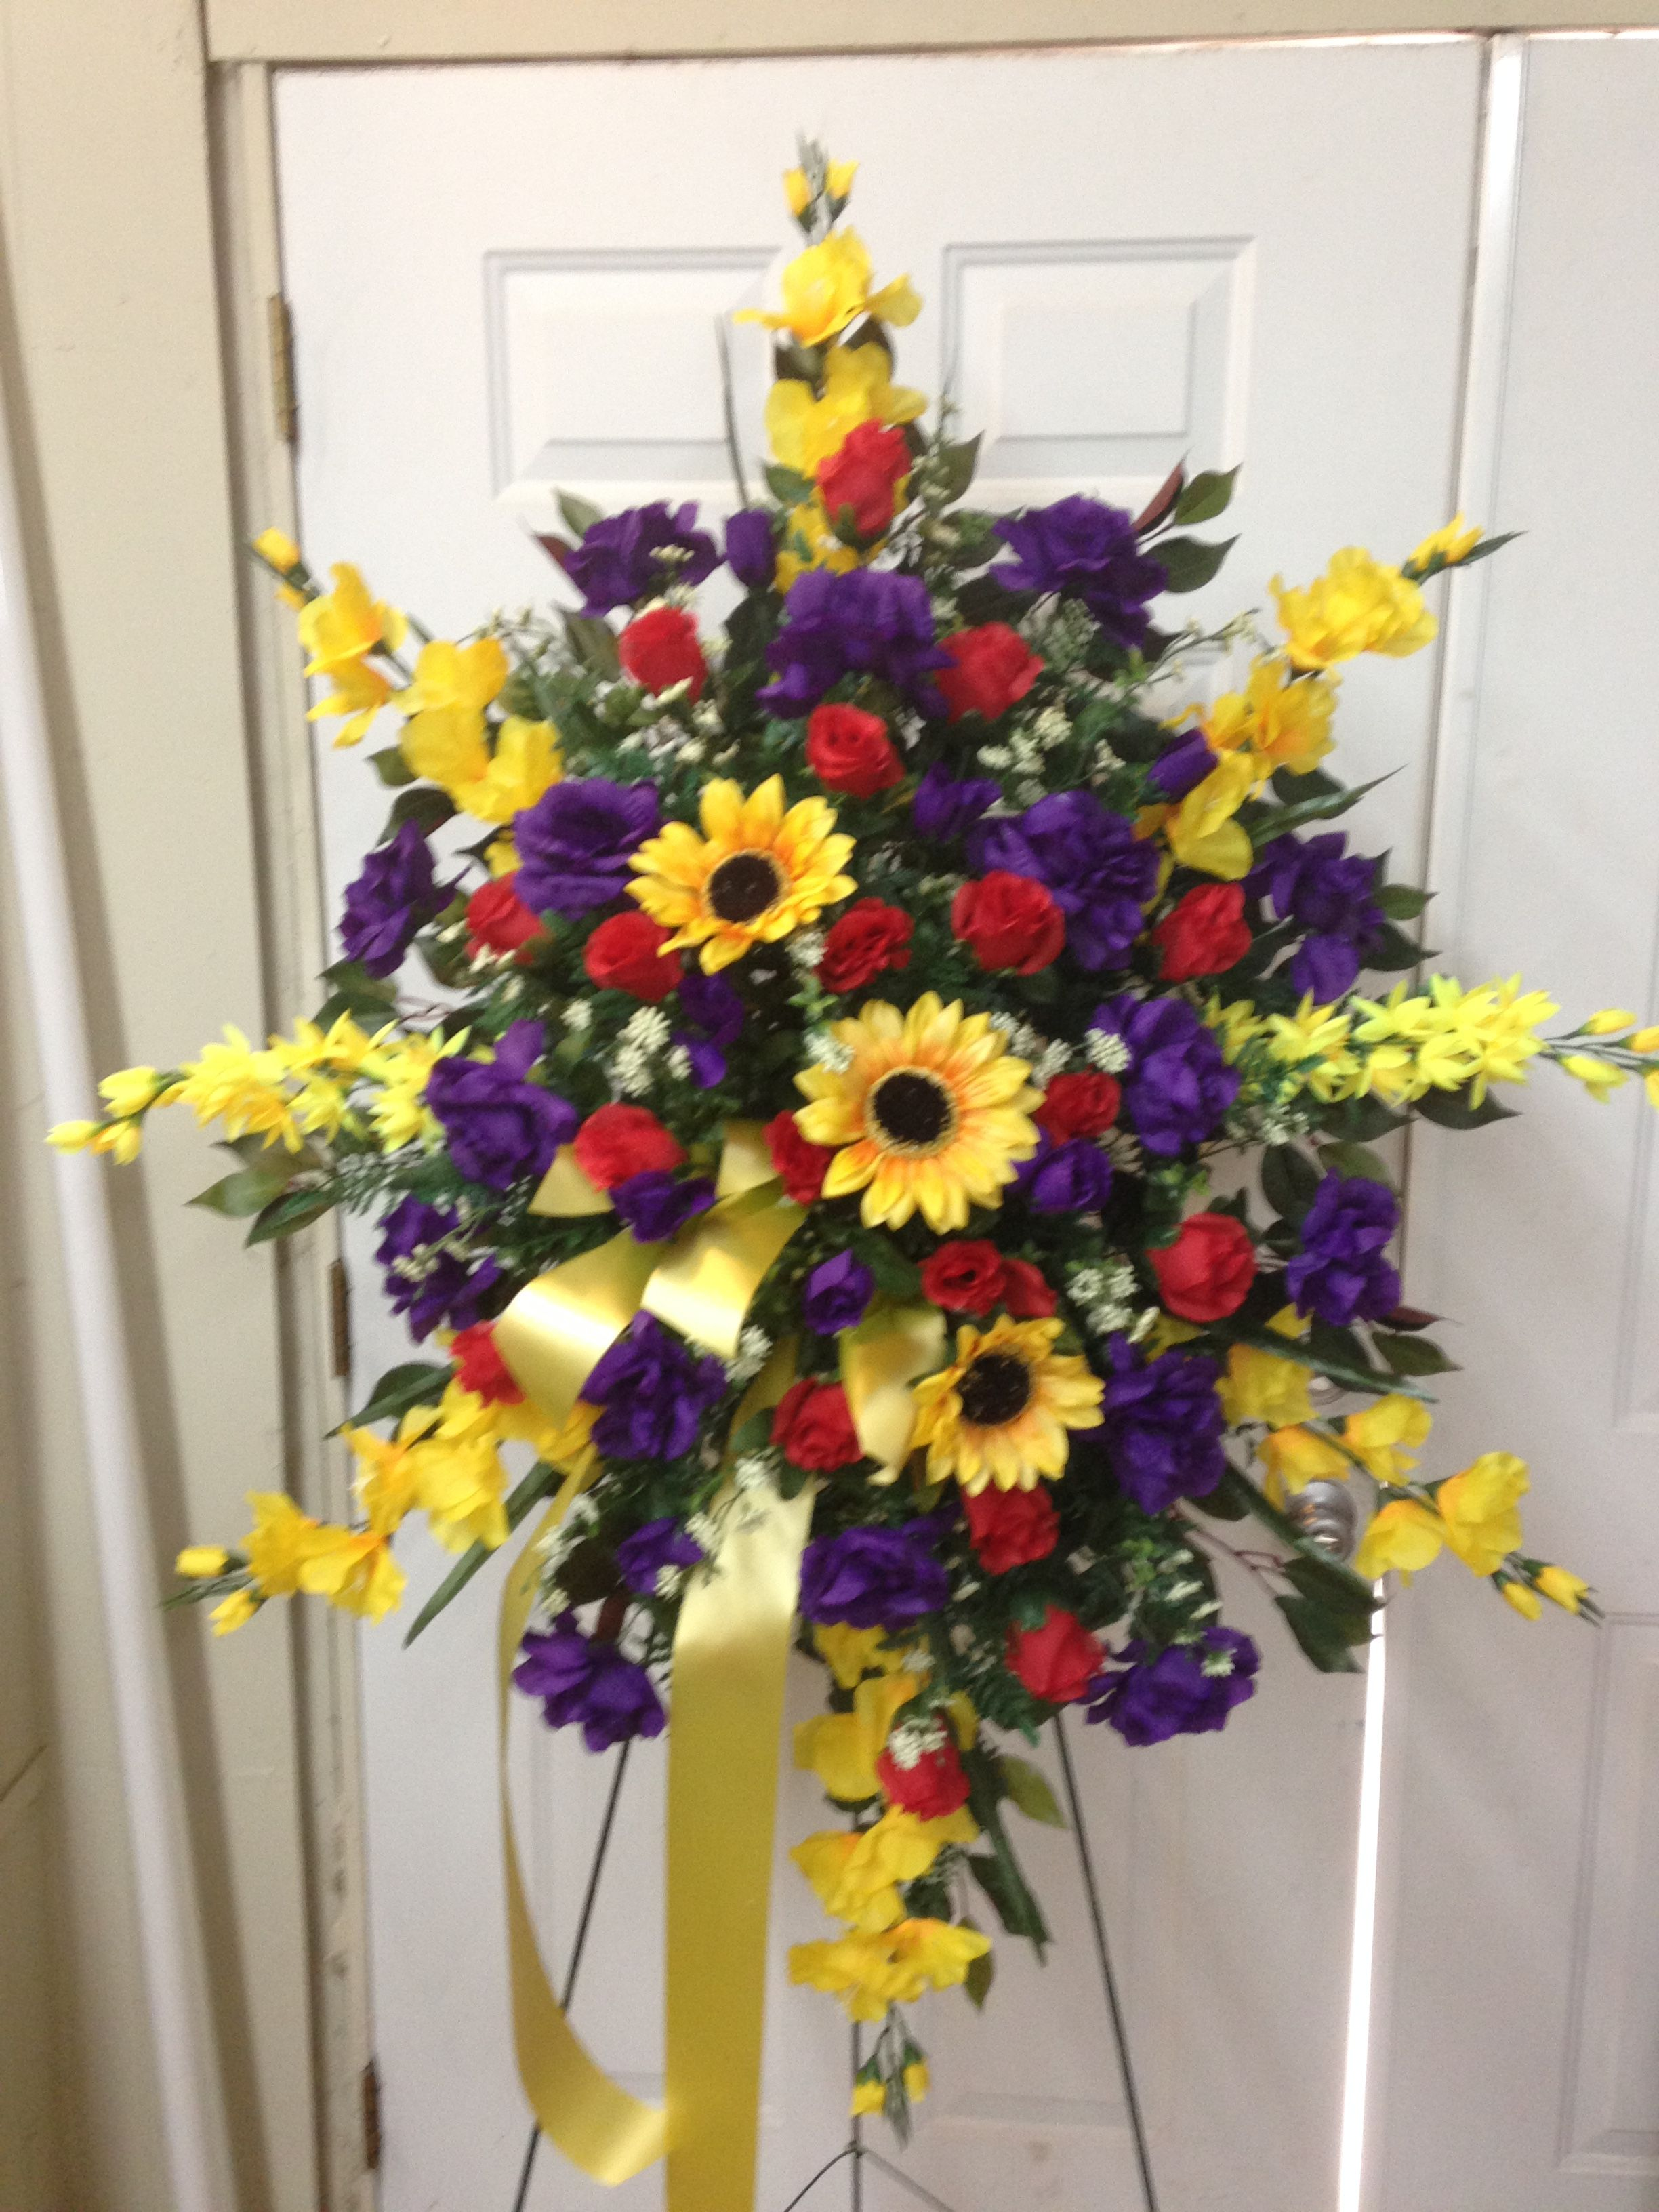 Silk funeral spray using yellow gladiolus yellow sunflower purple silk funeral spray using yellow gladiolus yellow sunflower purple roses red rose buds and white filler flowers with yellow ribbon streamers izmirmasajfo